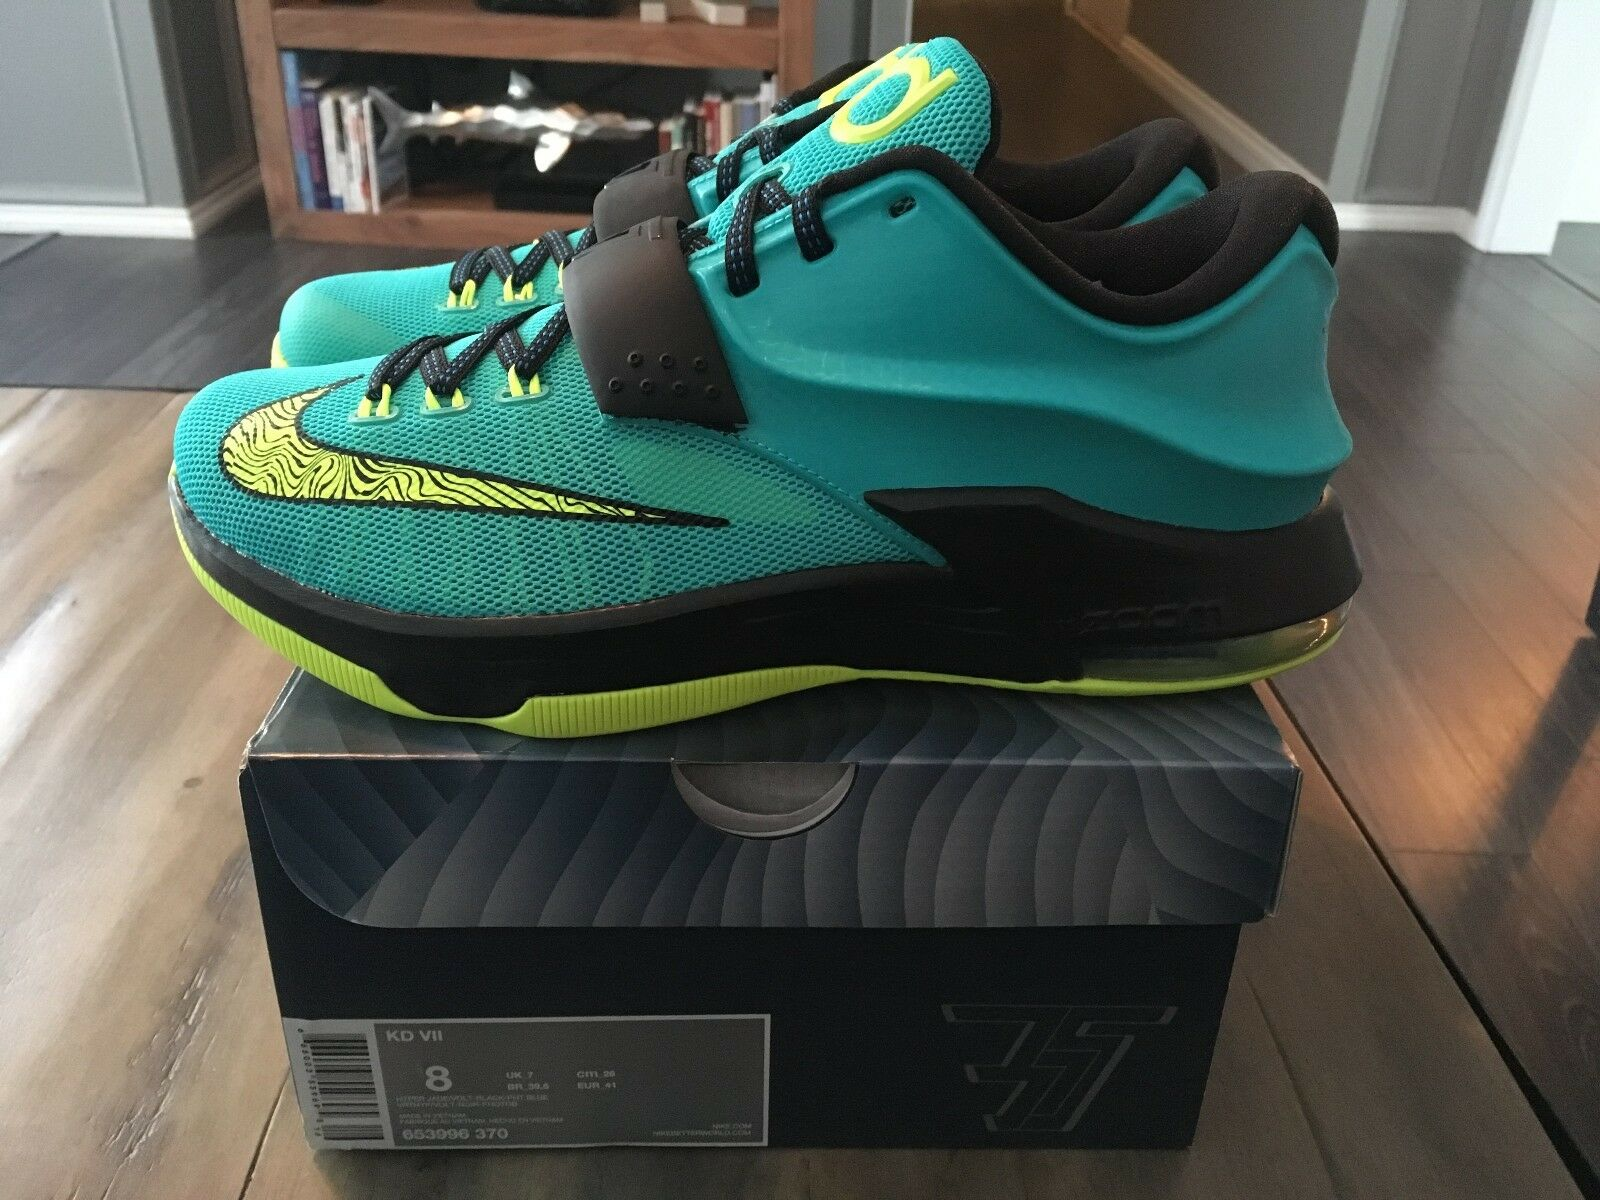 Nike KD 7 VII Uprising Kevin Durant    Size 8 Nike Basketball shoes Sneakers New b37cd1